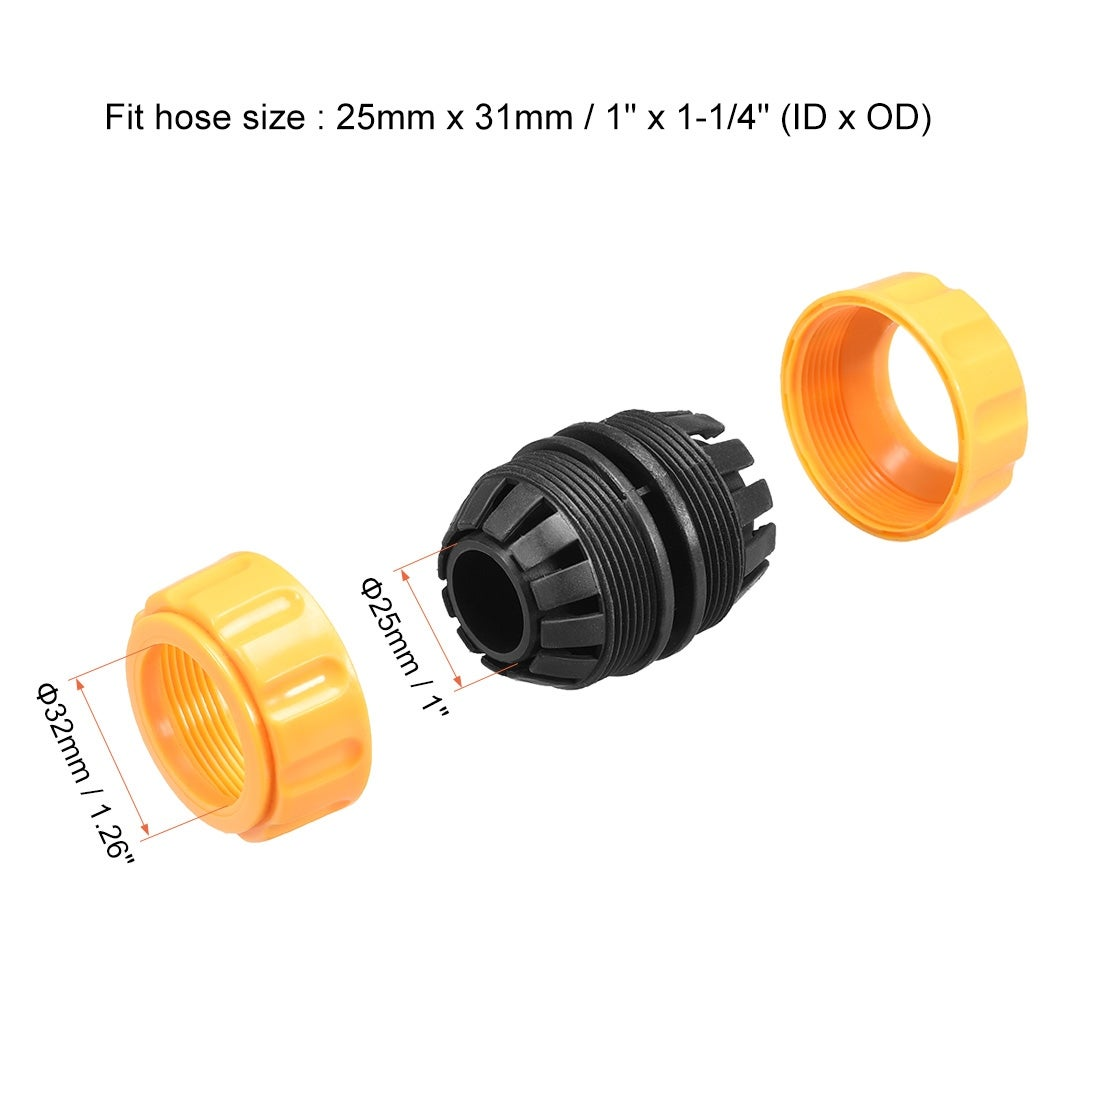 2 x 20mm Car Hose Connectors T Piece Fittings Joiners Multi Use